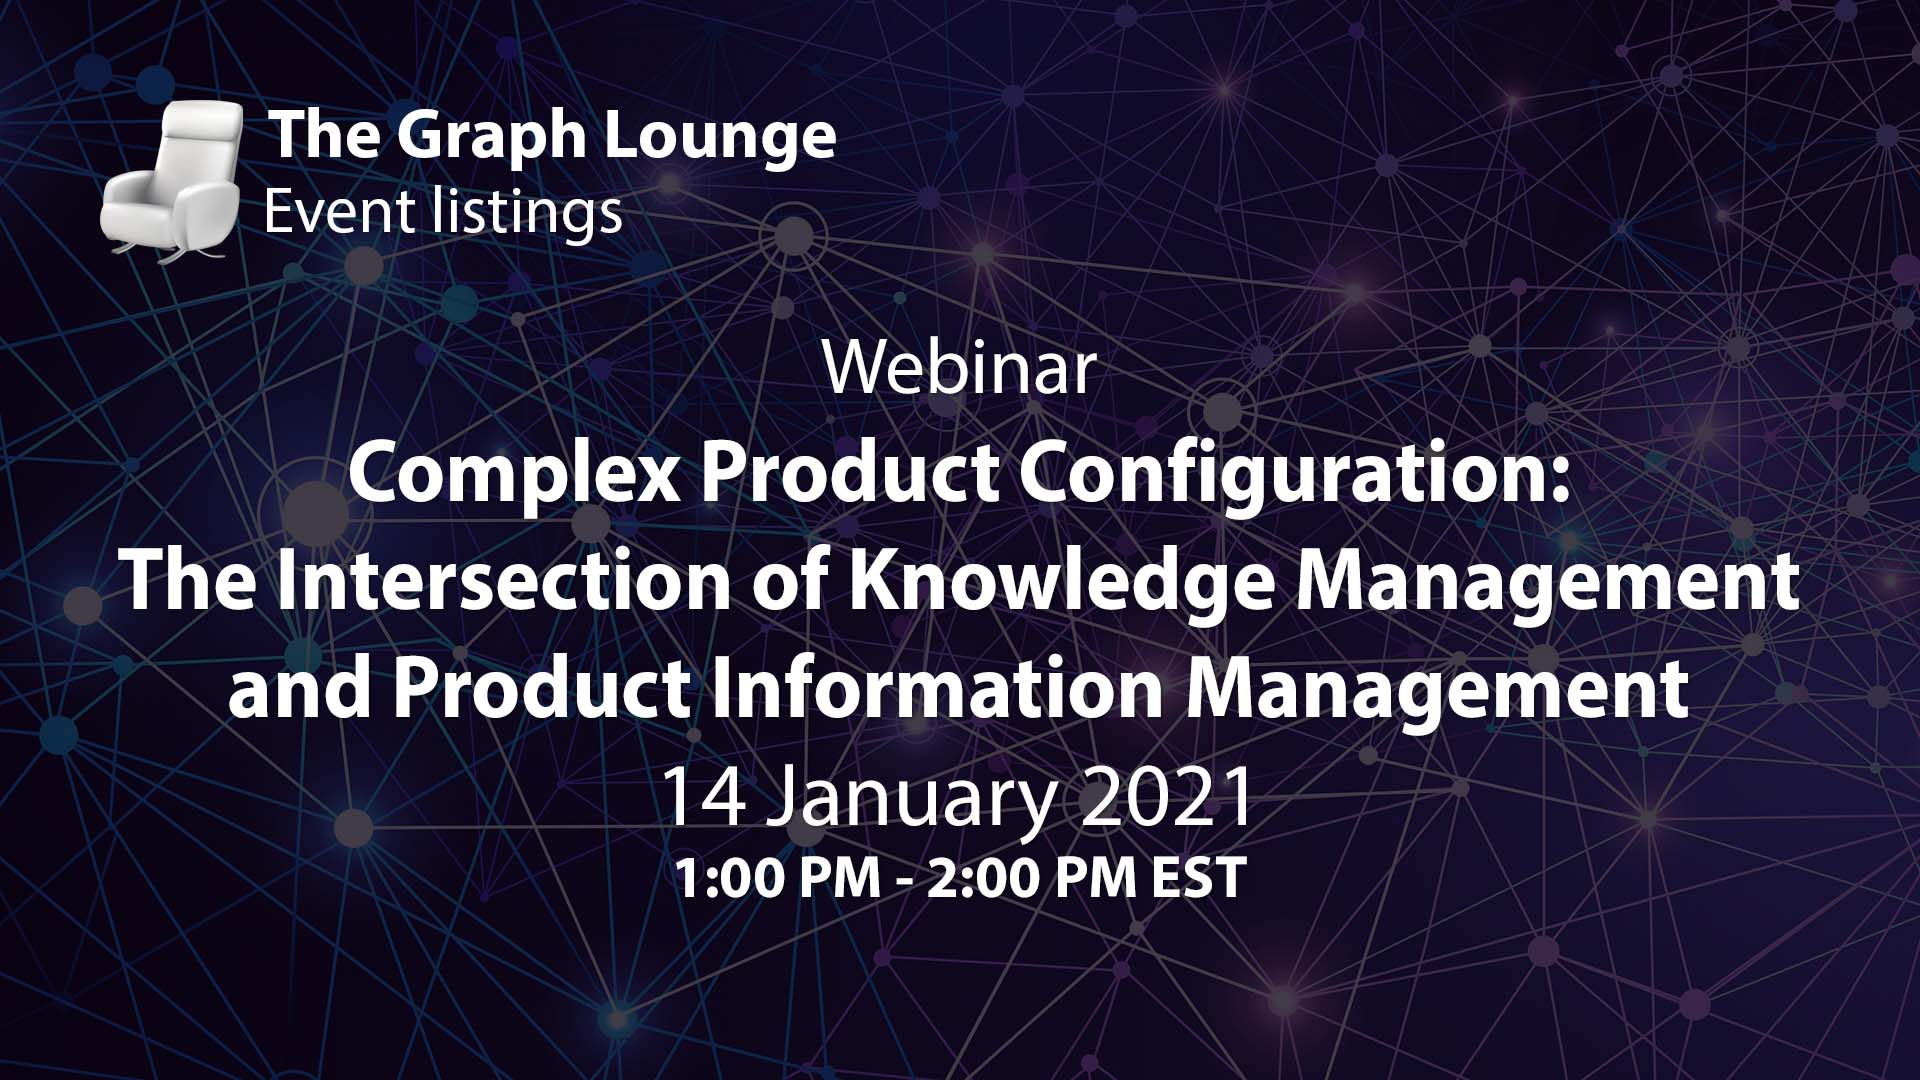 Complex Product Configuration: The Intersection of Knowledge Management and Product Information Management